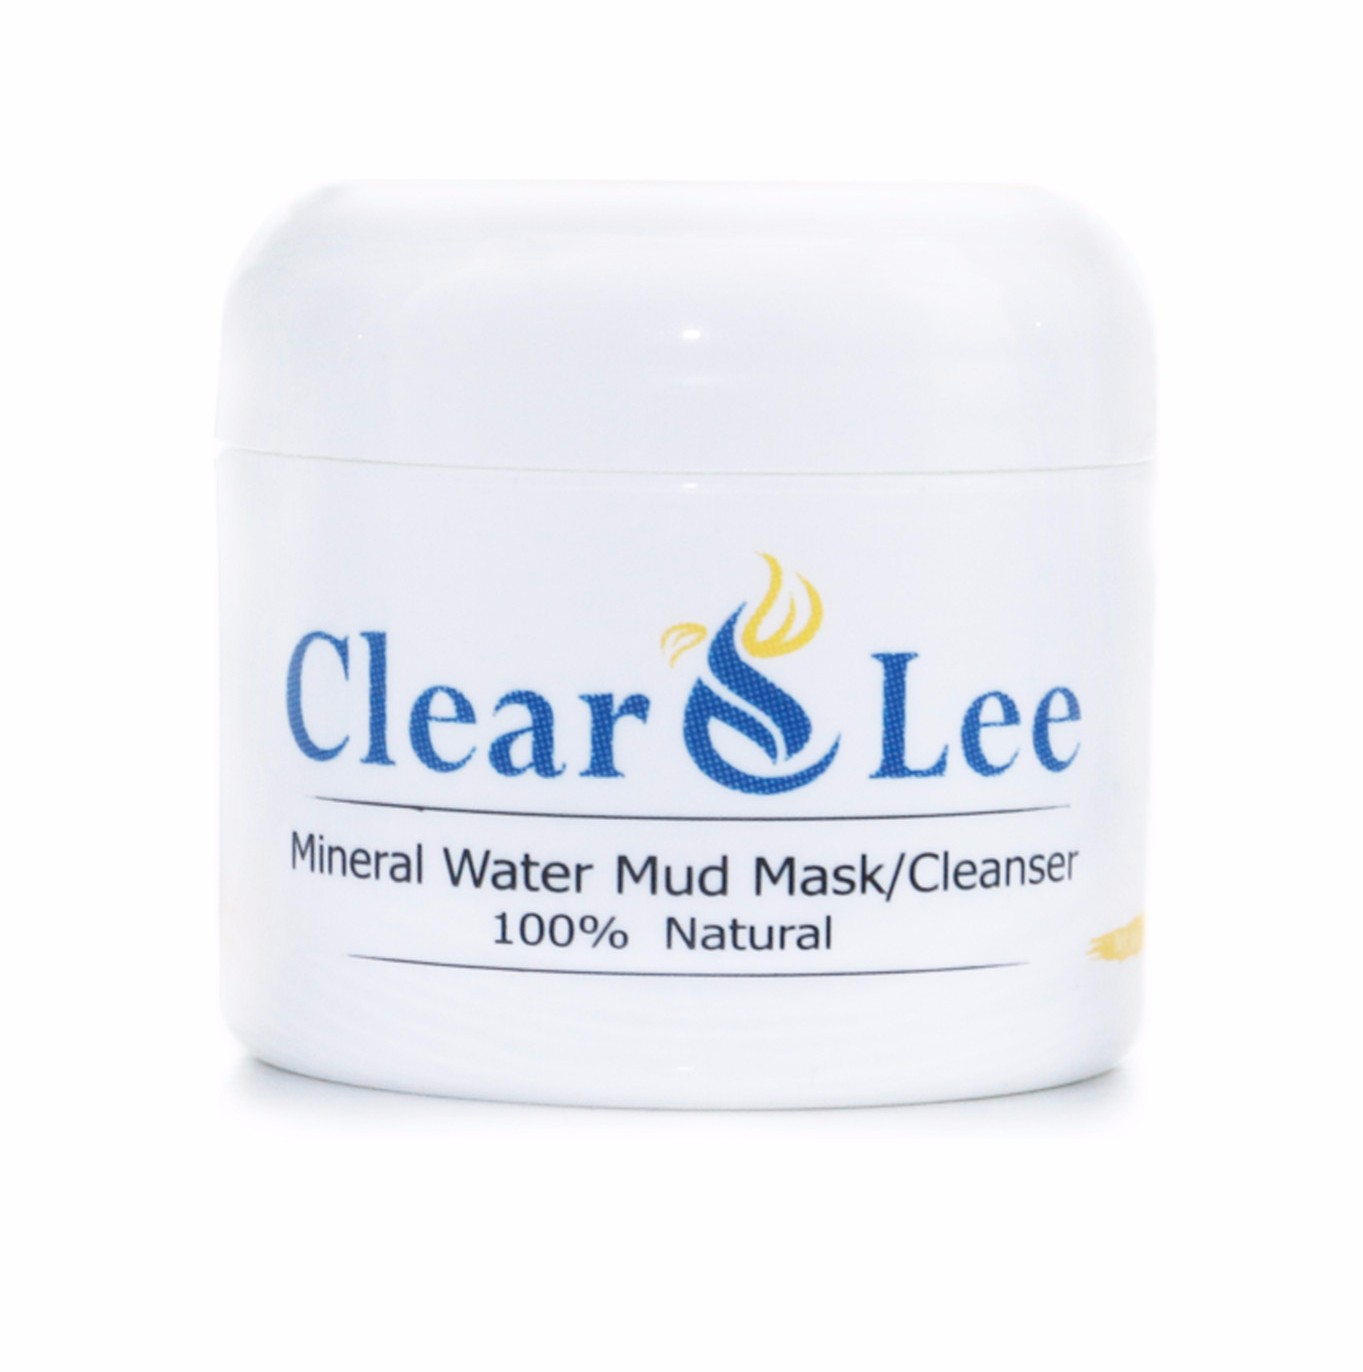 ClearLee Mud Mask